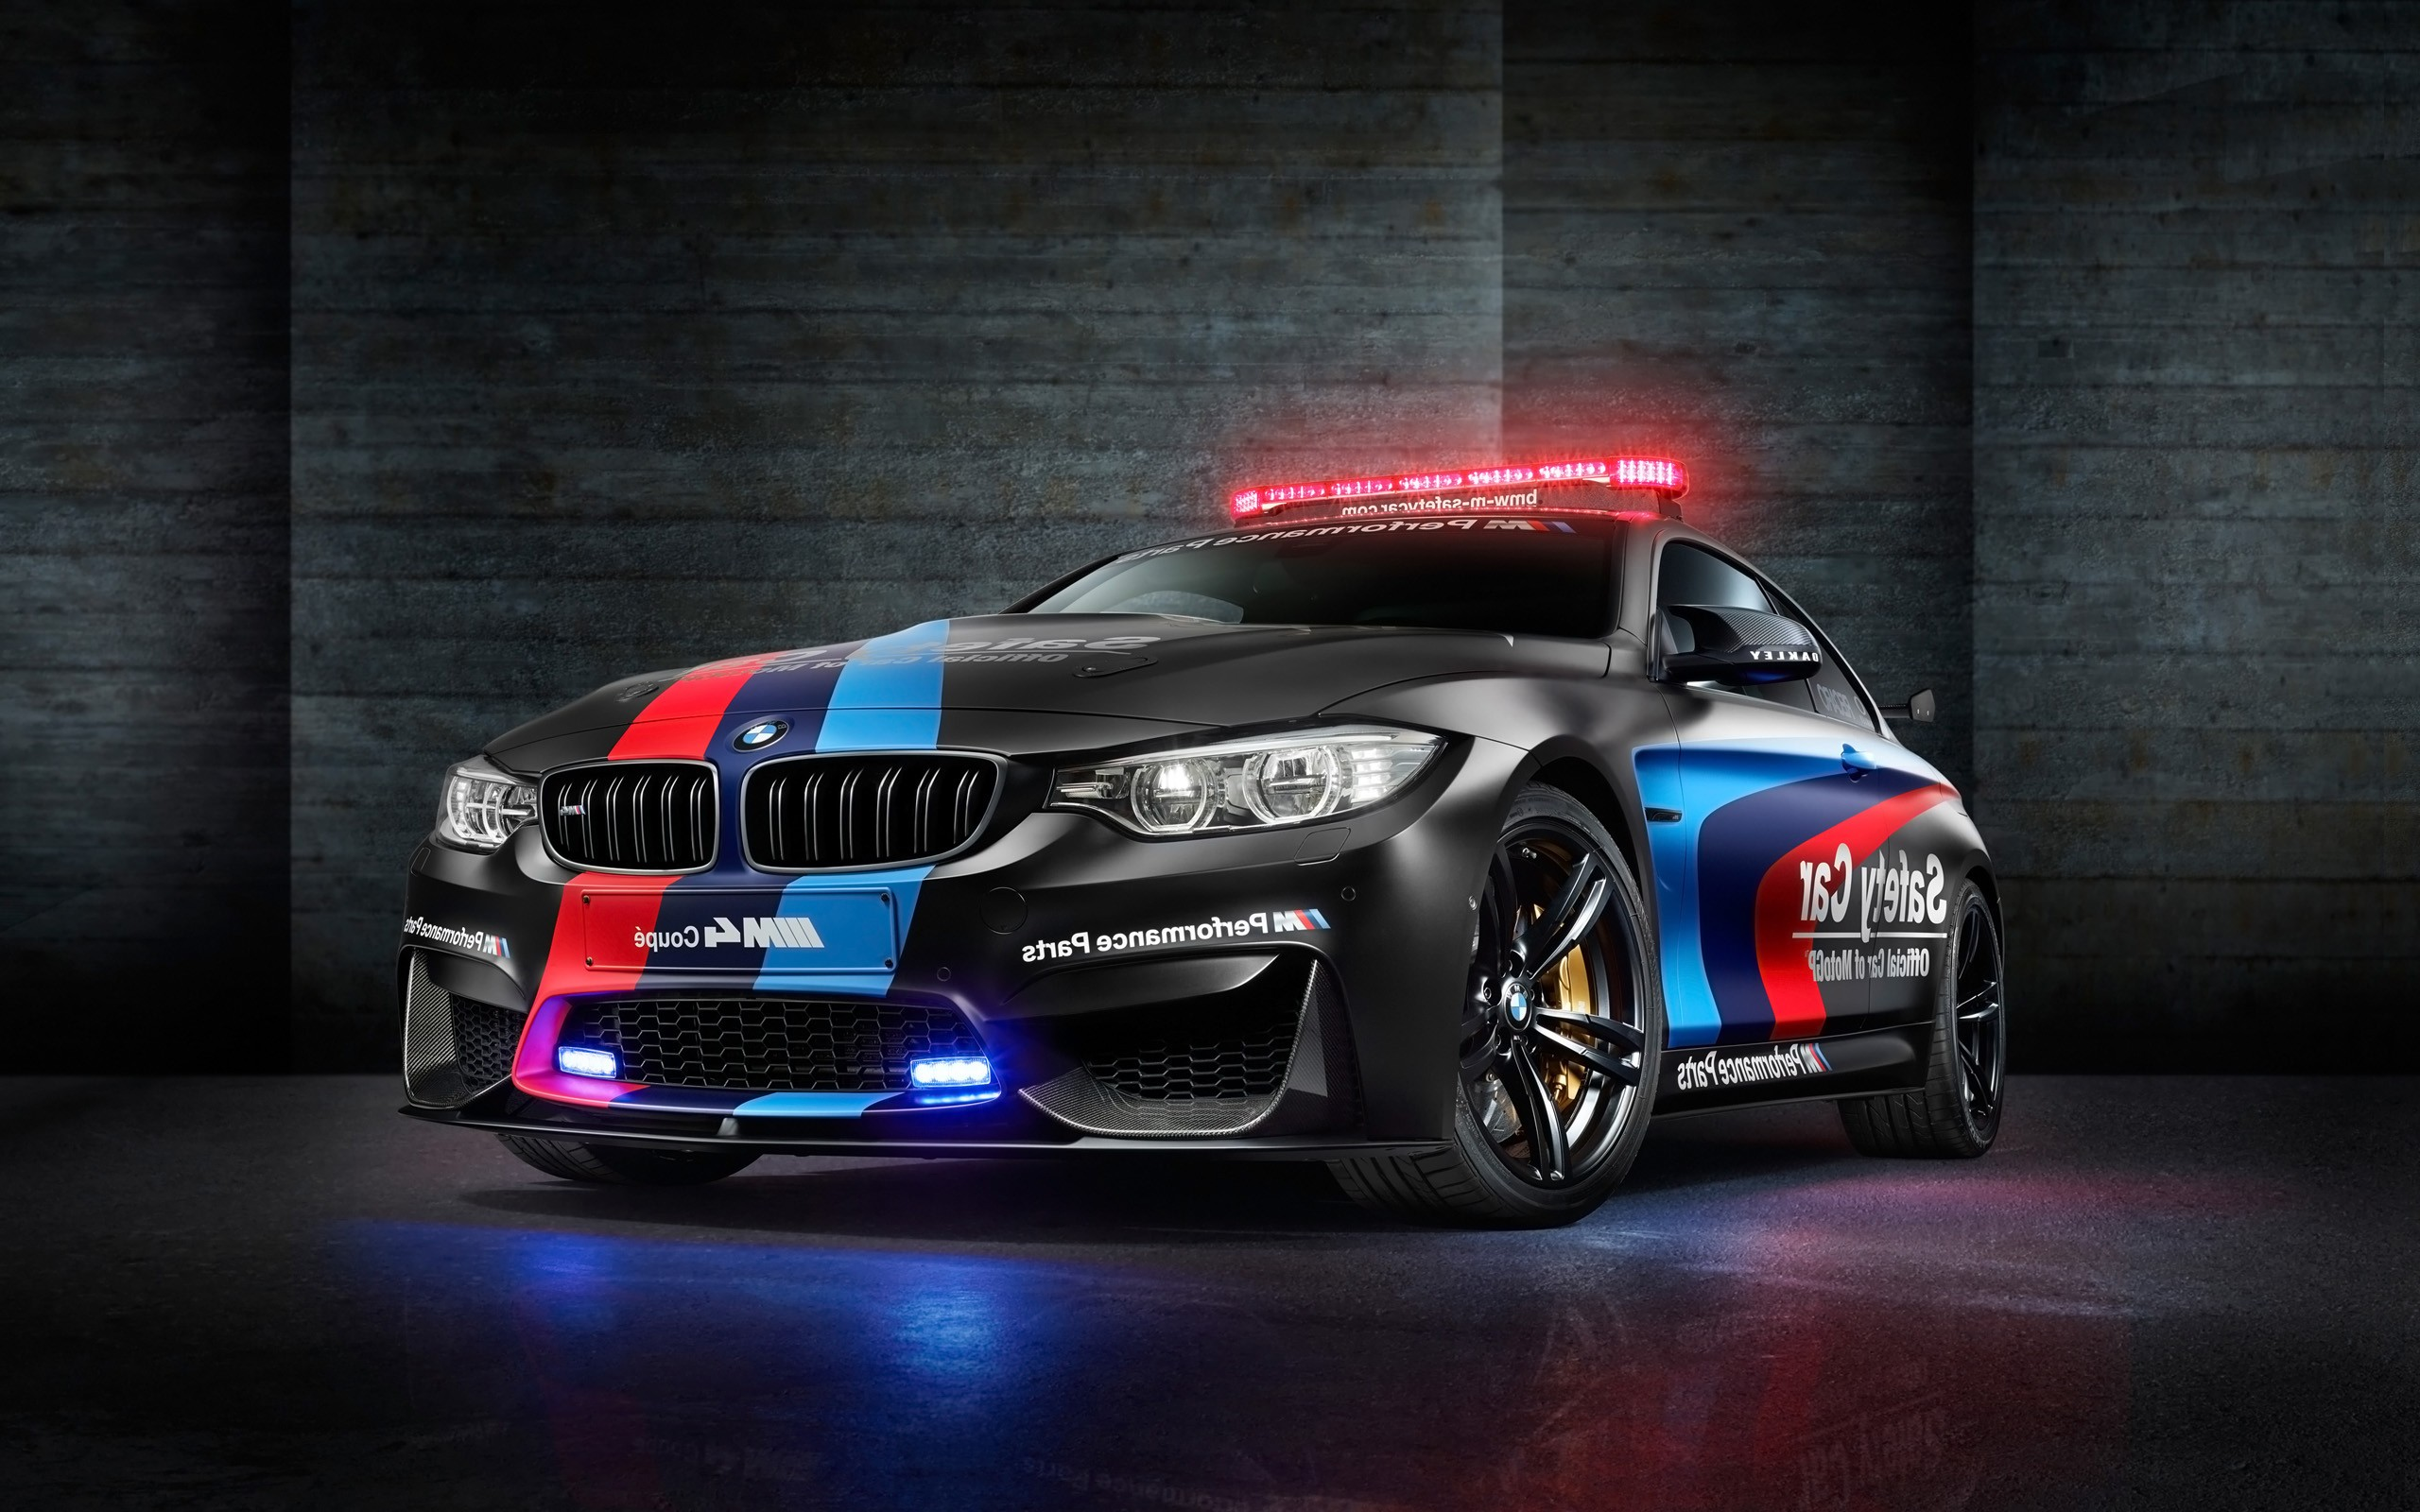 1366x768 Bmw M4 Motogp Safety Car 1366x768 Resolution Hd 4k